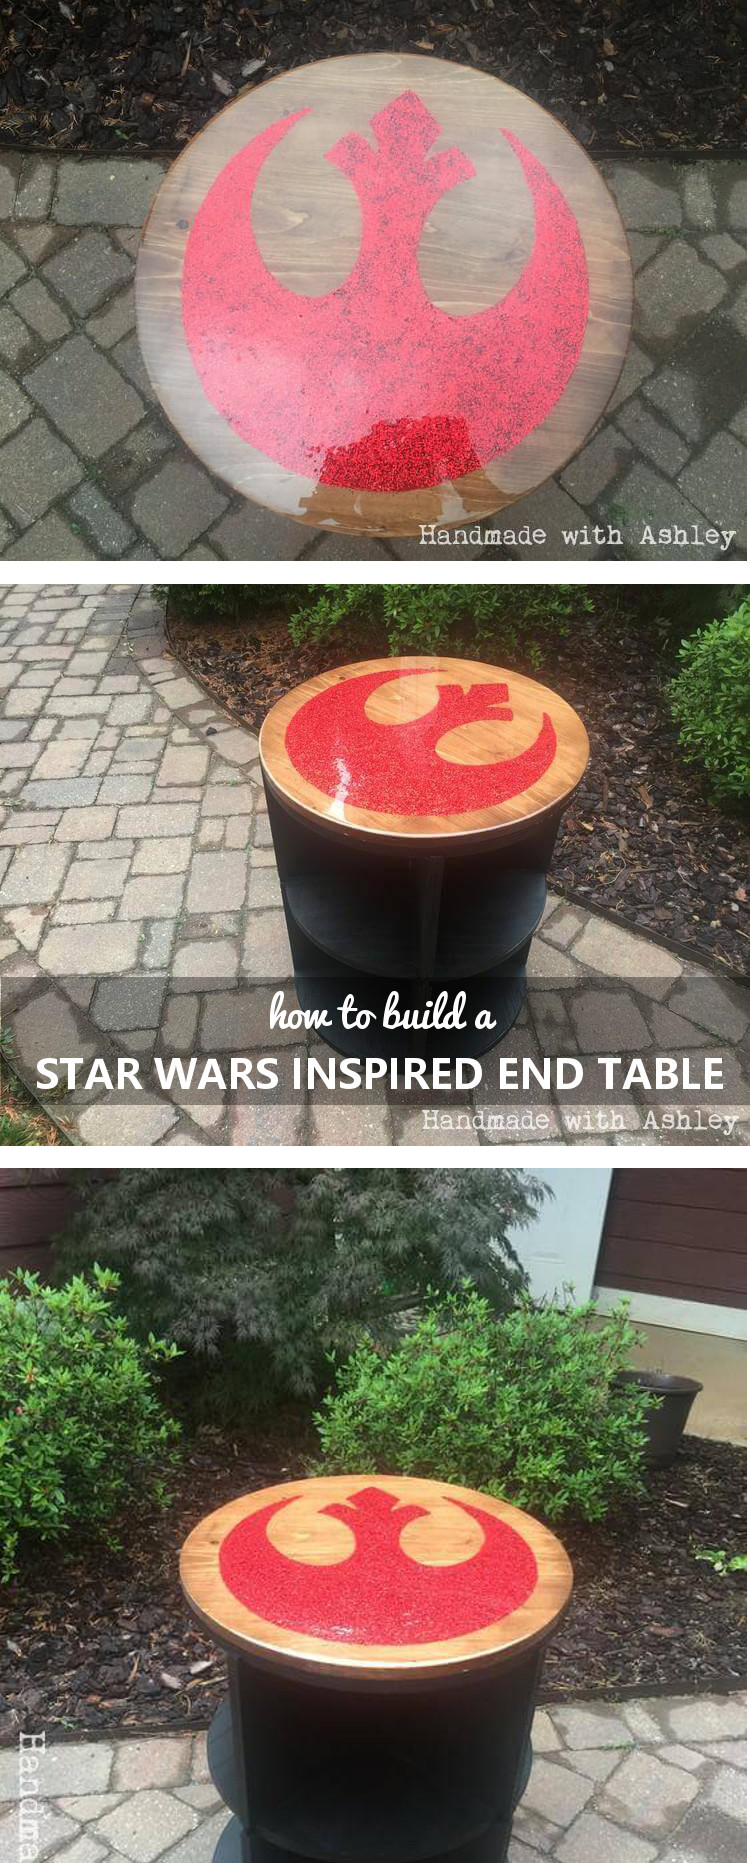 Pin it! How to build a Star Wars Inspired End Table